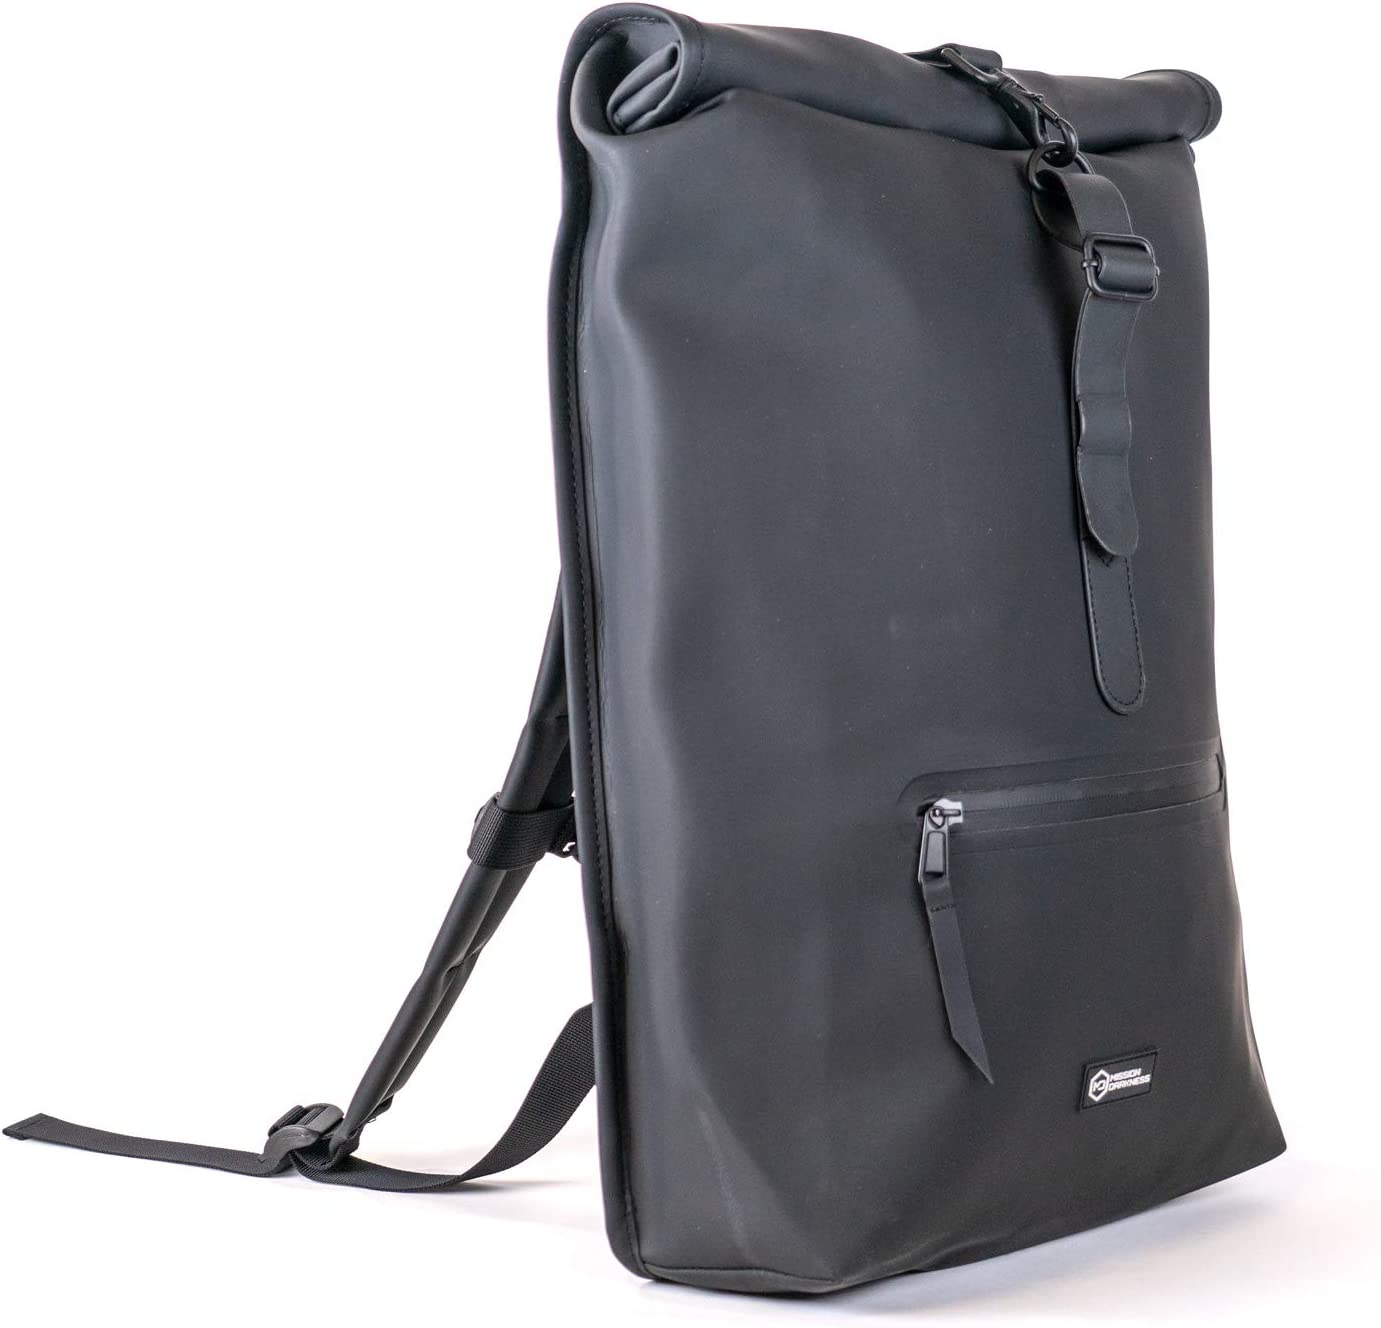 Mission Darkness FreeRoam Faraday Backpack. Stylish Bag with Durable Water-Resistant Exterior, RF Blocking Liner, Padded Laptop Compartment. Used for Device Isolation, Anti-Tracking, EMF Shielding.